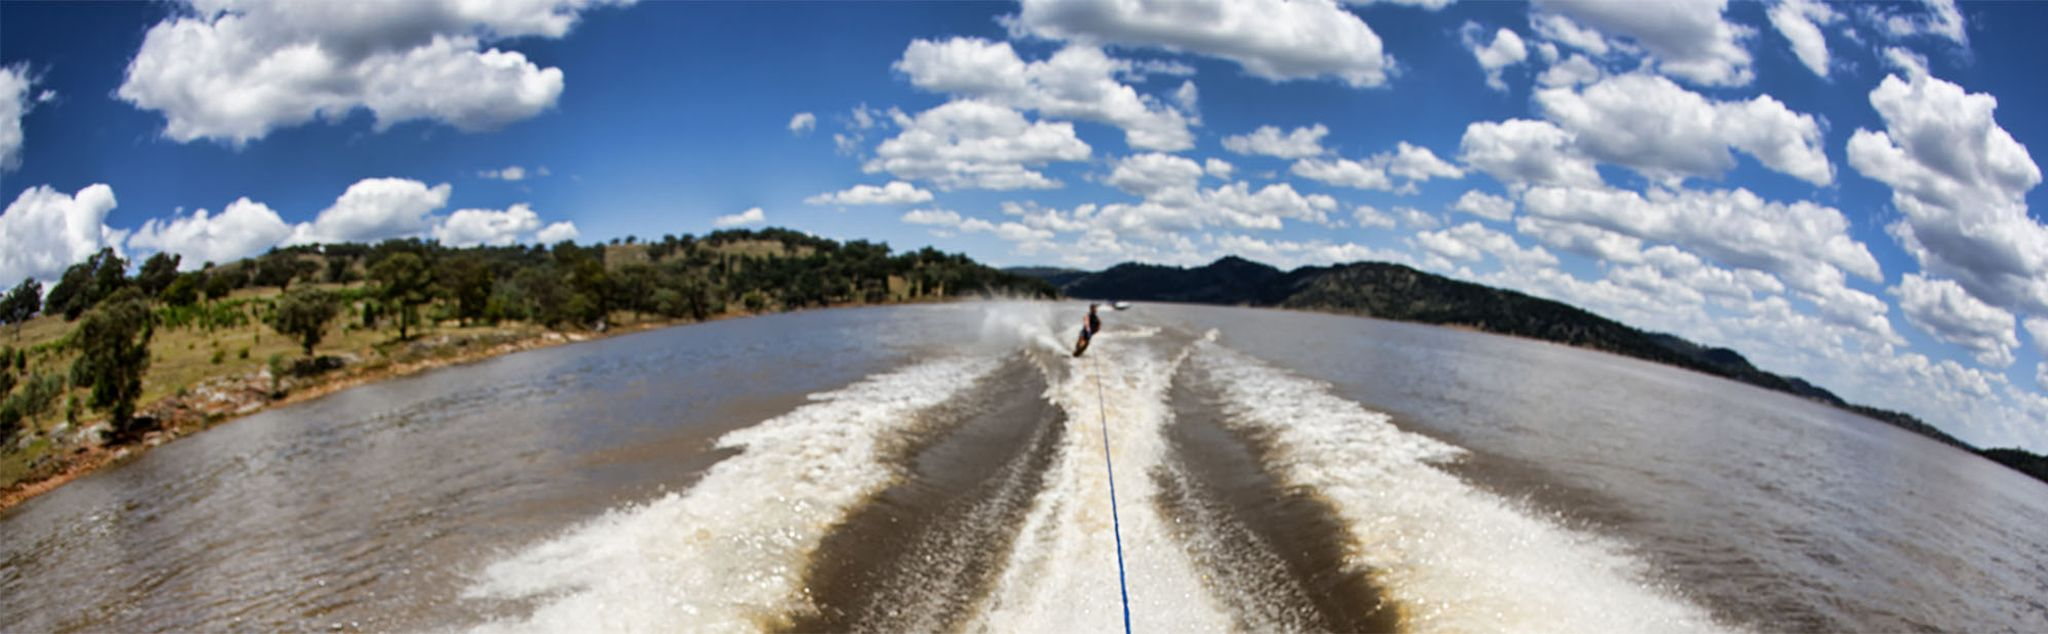 Water Skiing in Cuenca